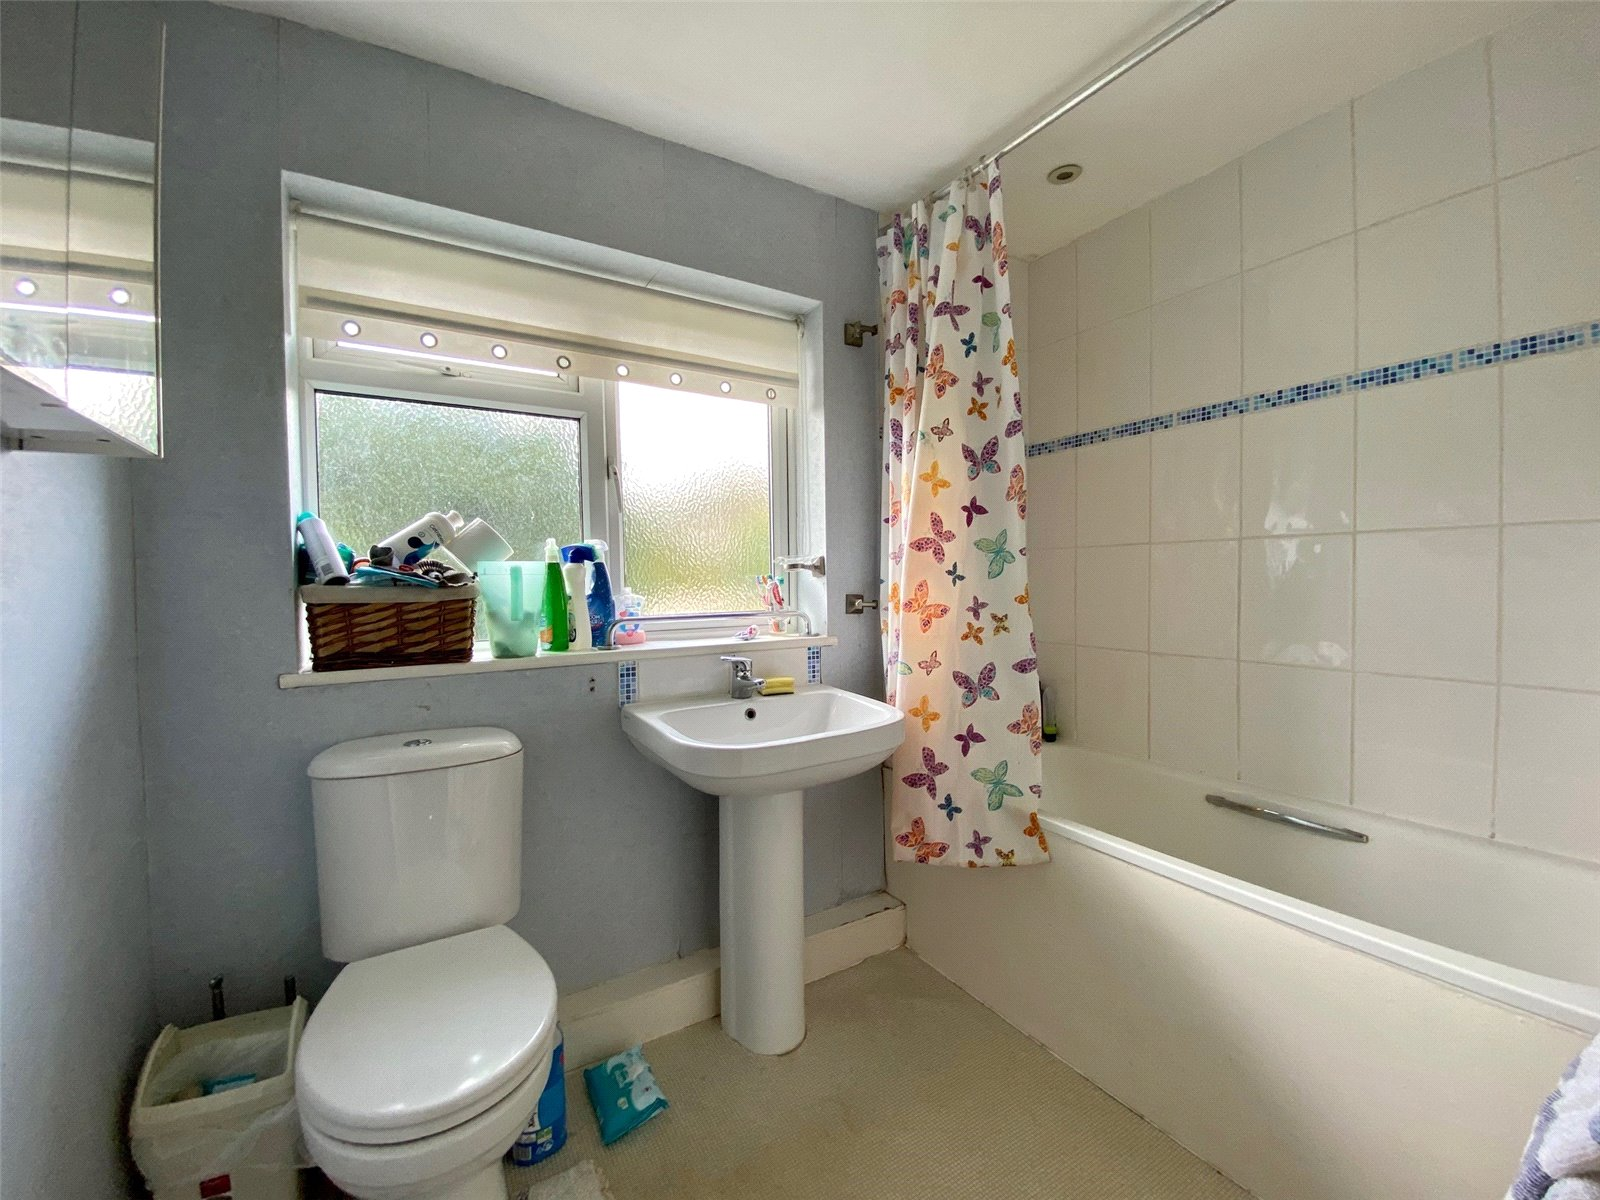 3 bed house to rent in Bricket Wood, AL2 3NB 3